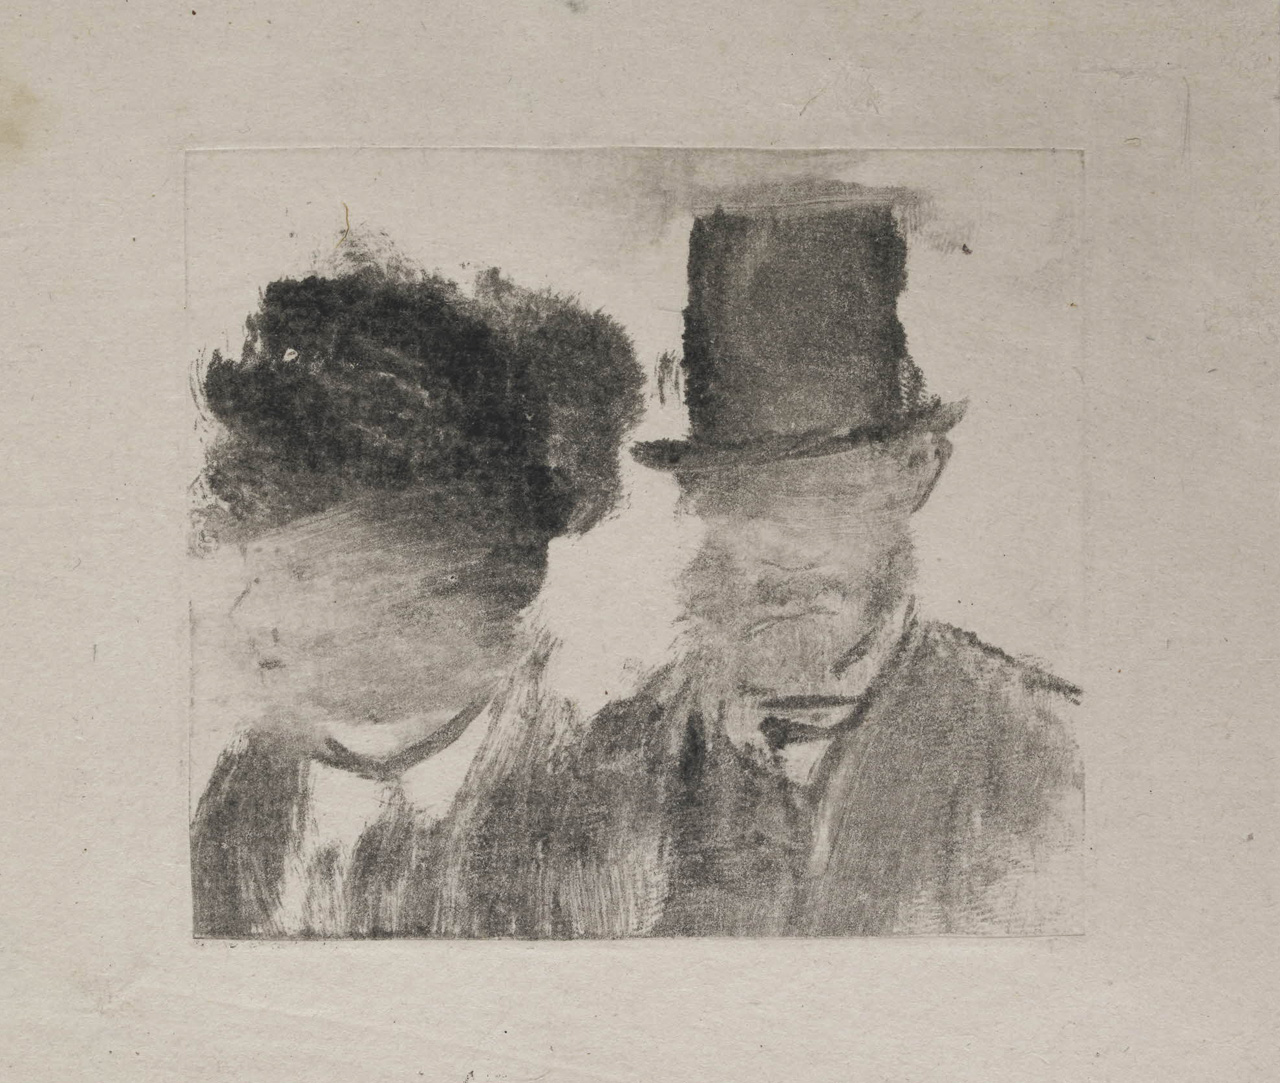 Edgar Degas: Heads of a Man and a Woman, cognate, British Museum 1949,0411.2422